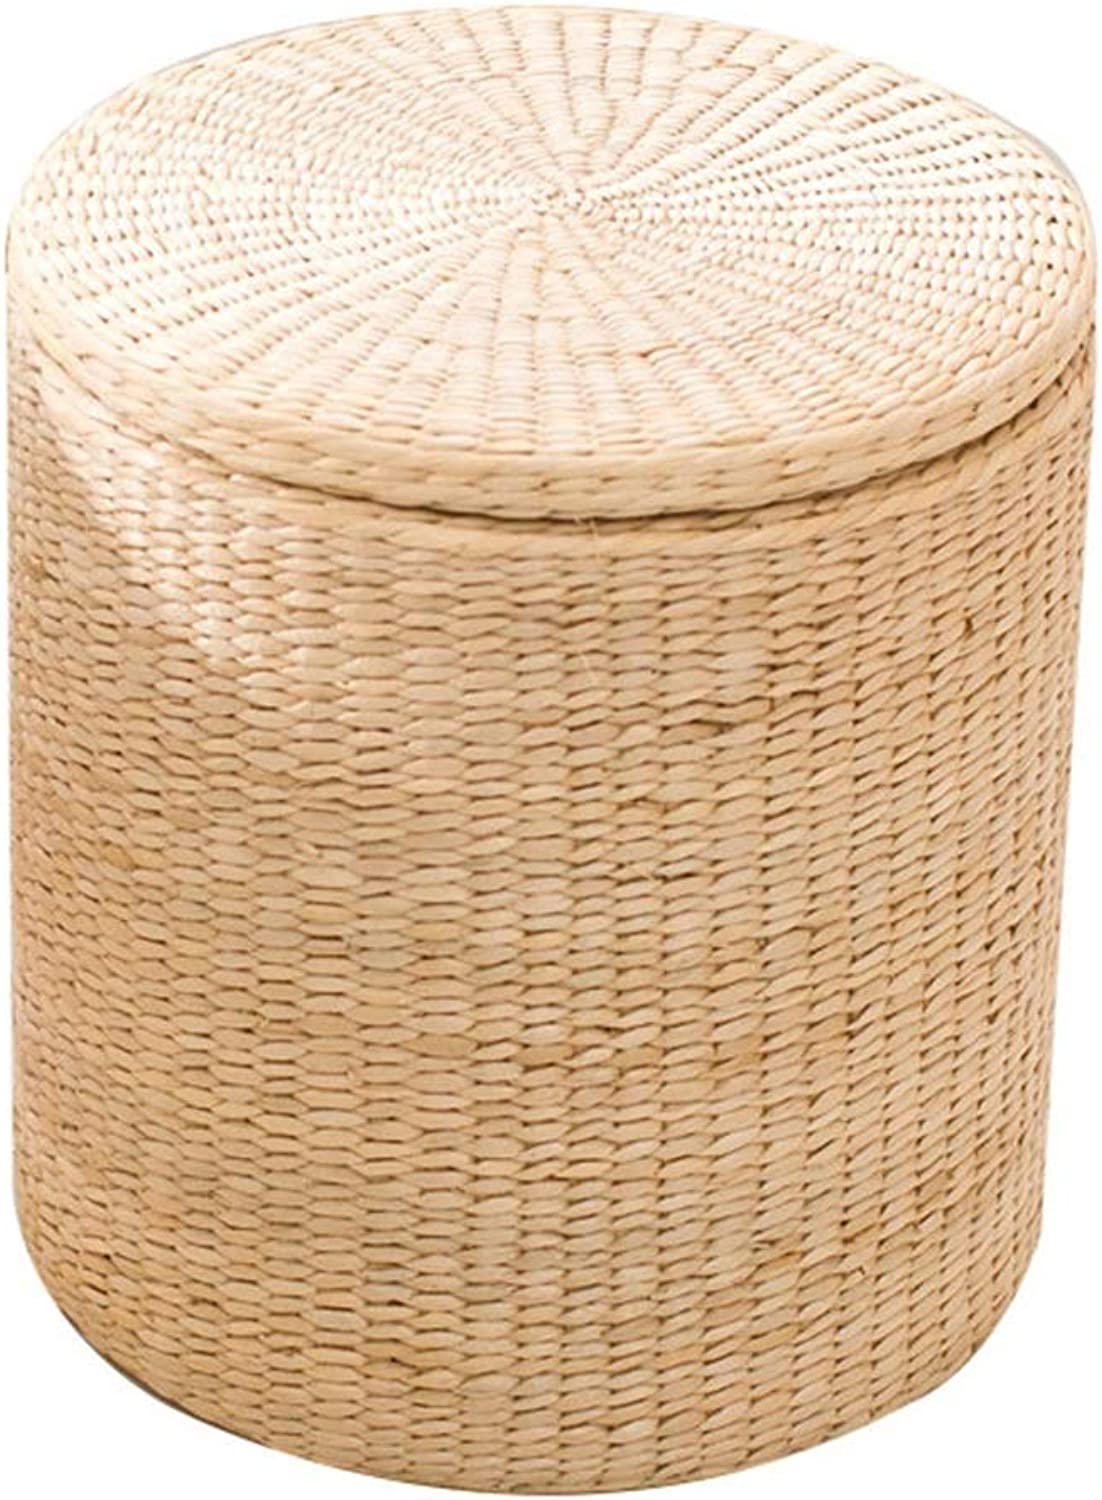 ZH STOOLS Sofa Stool, Round Solid Wood Rural Rattan Grass Art Change shoes Bench for Makeup Footrest Storage (color   A-1, Size   29  33CM)